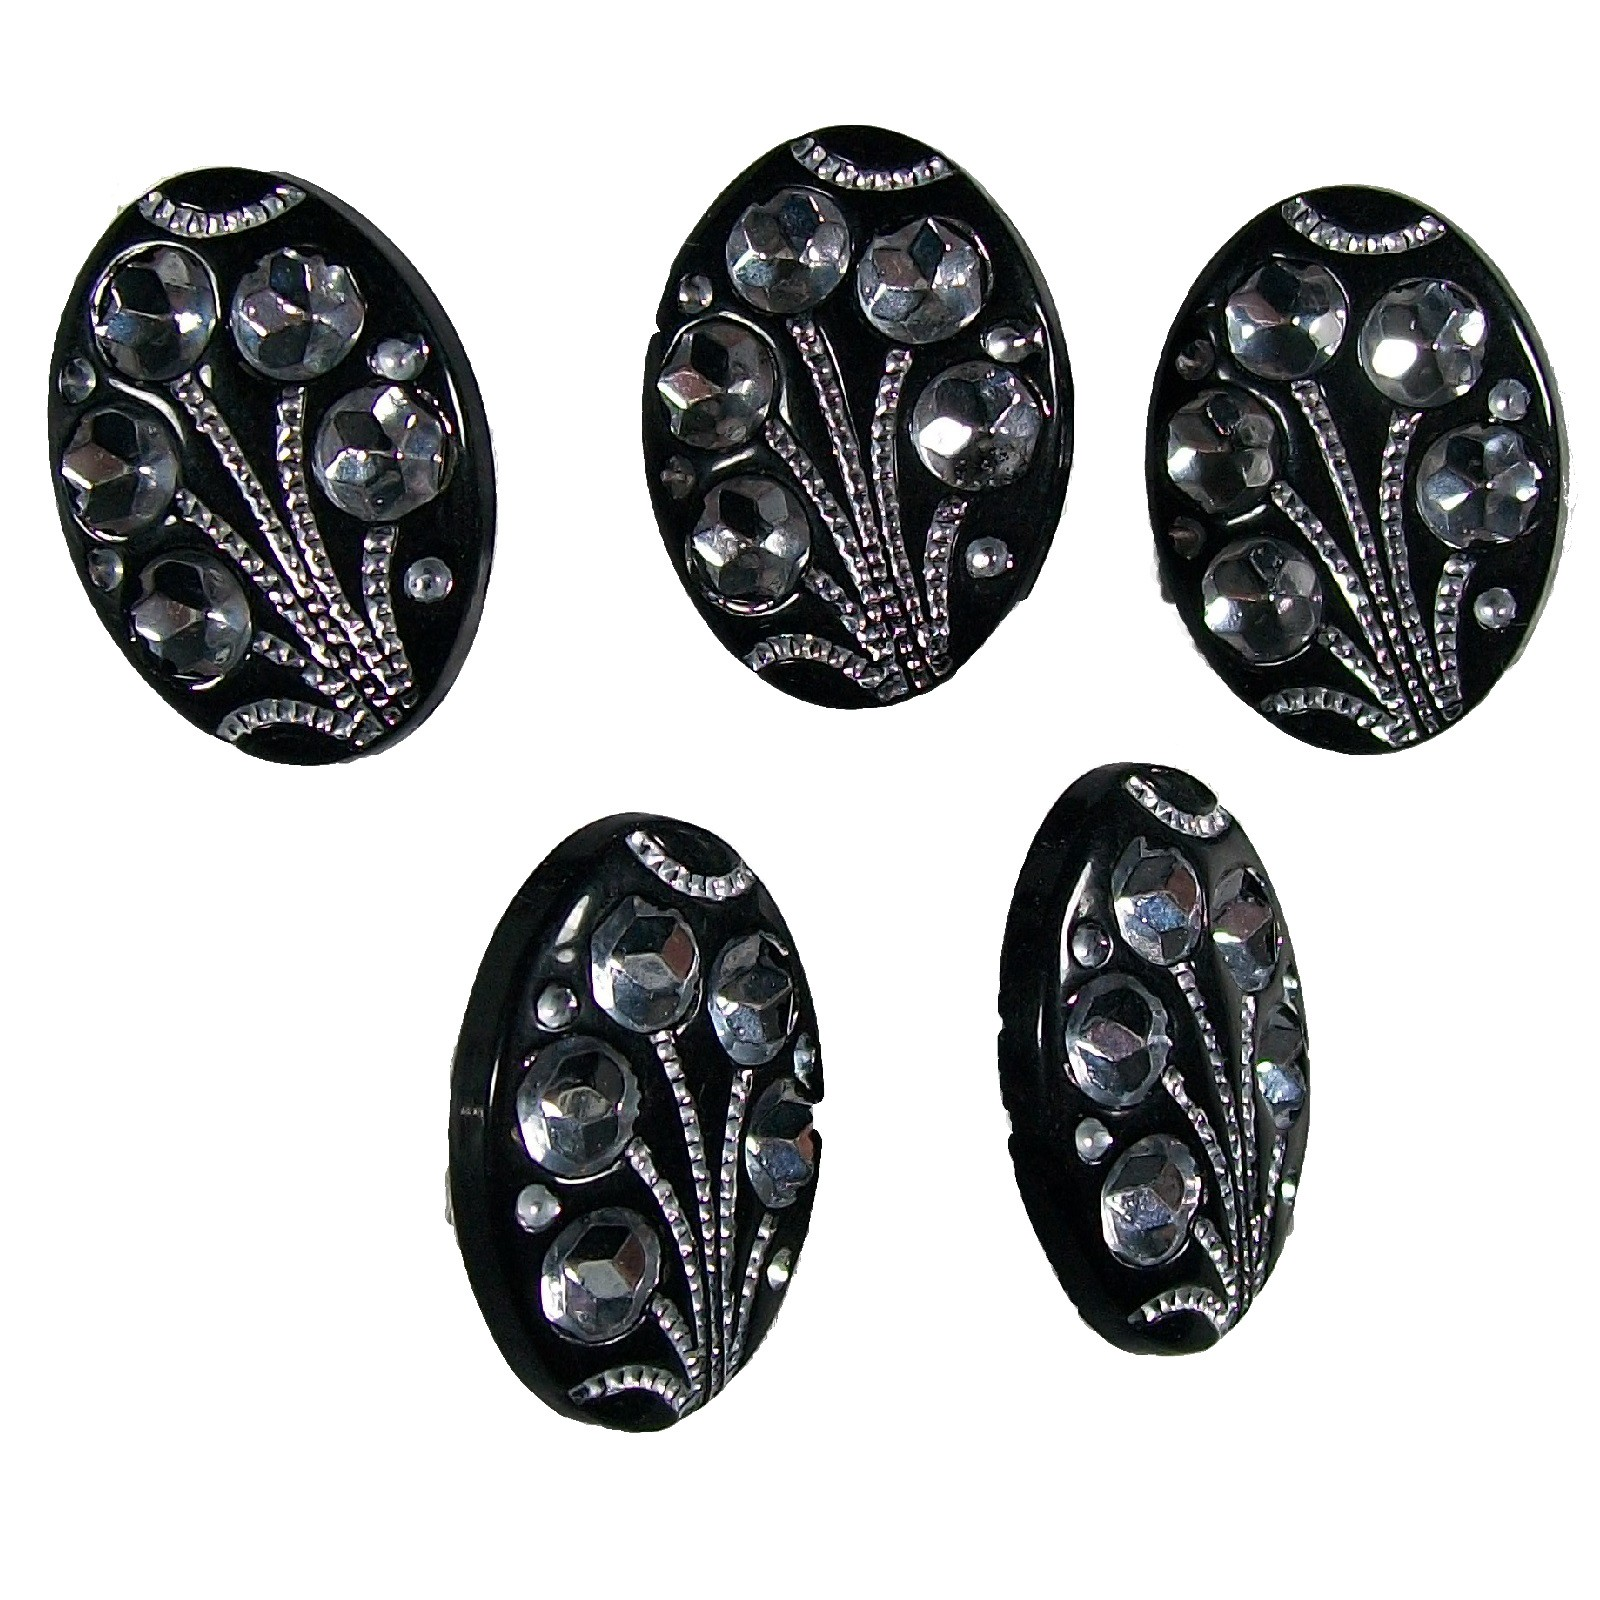 Black Diamante Art Deco Style Buttons 17mm x 12mm Oval Pack of 5